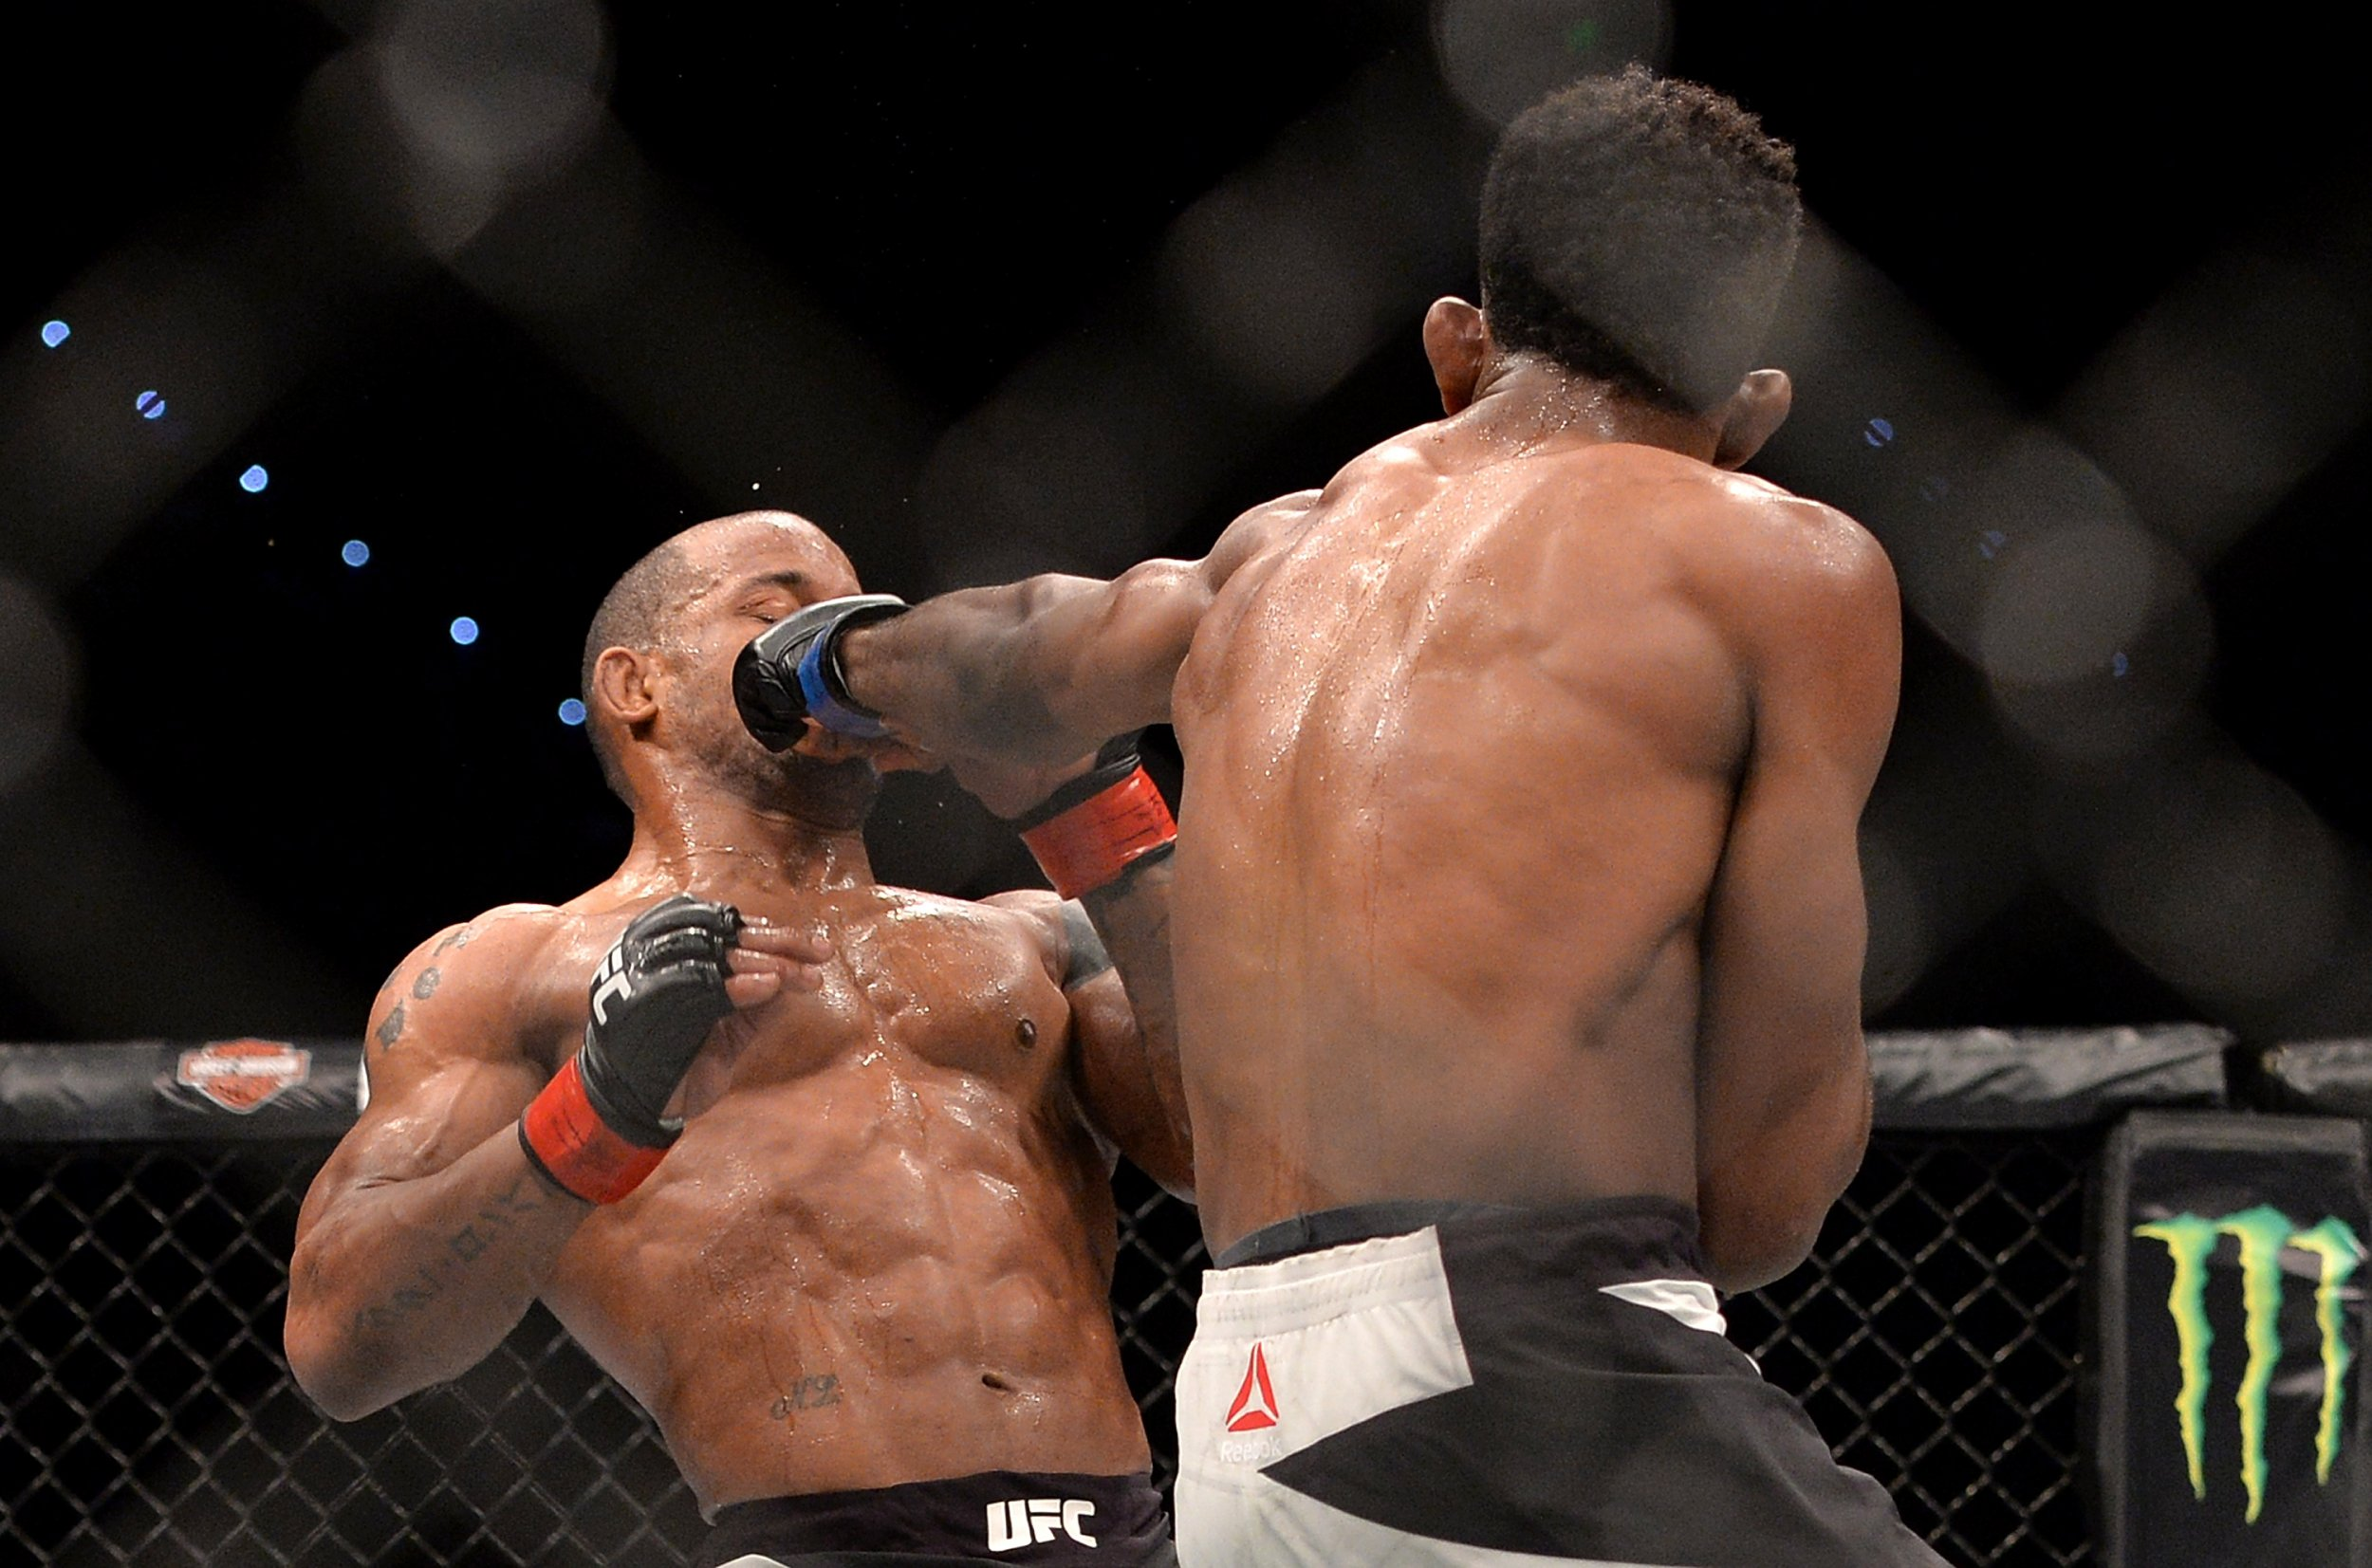 UFC fighters in action.